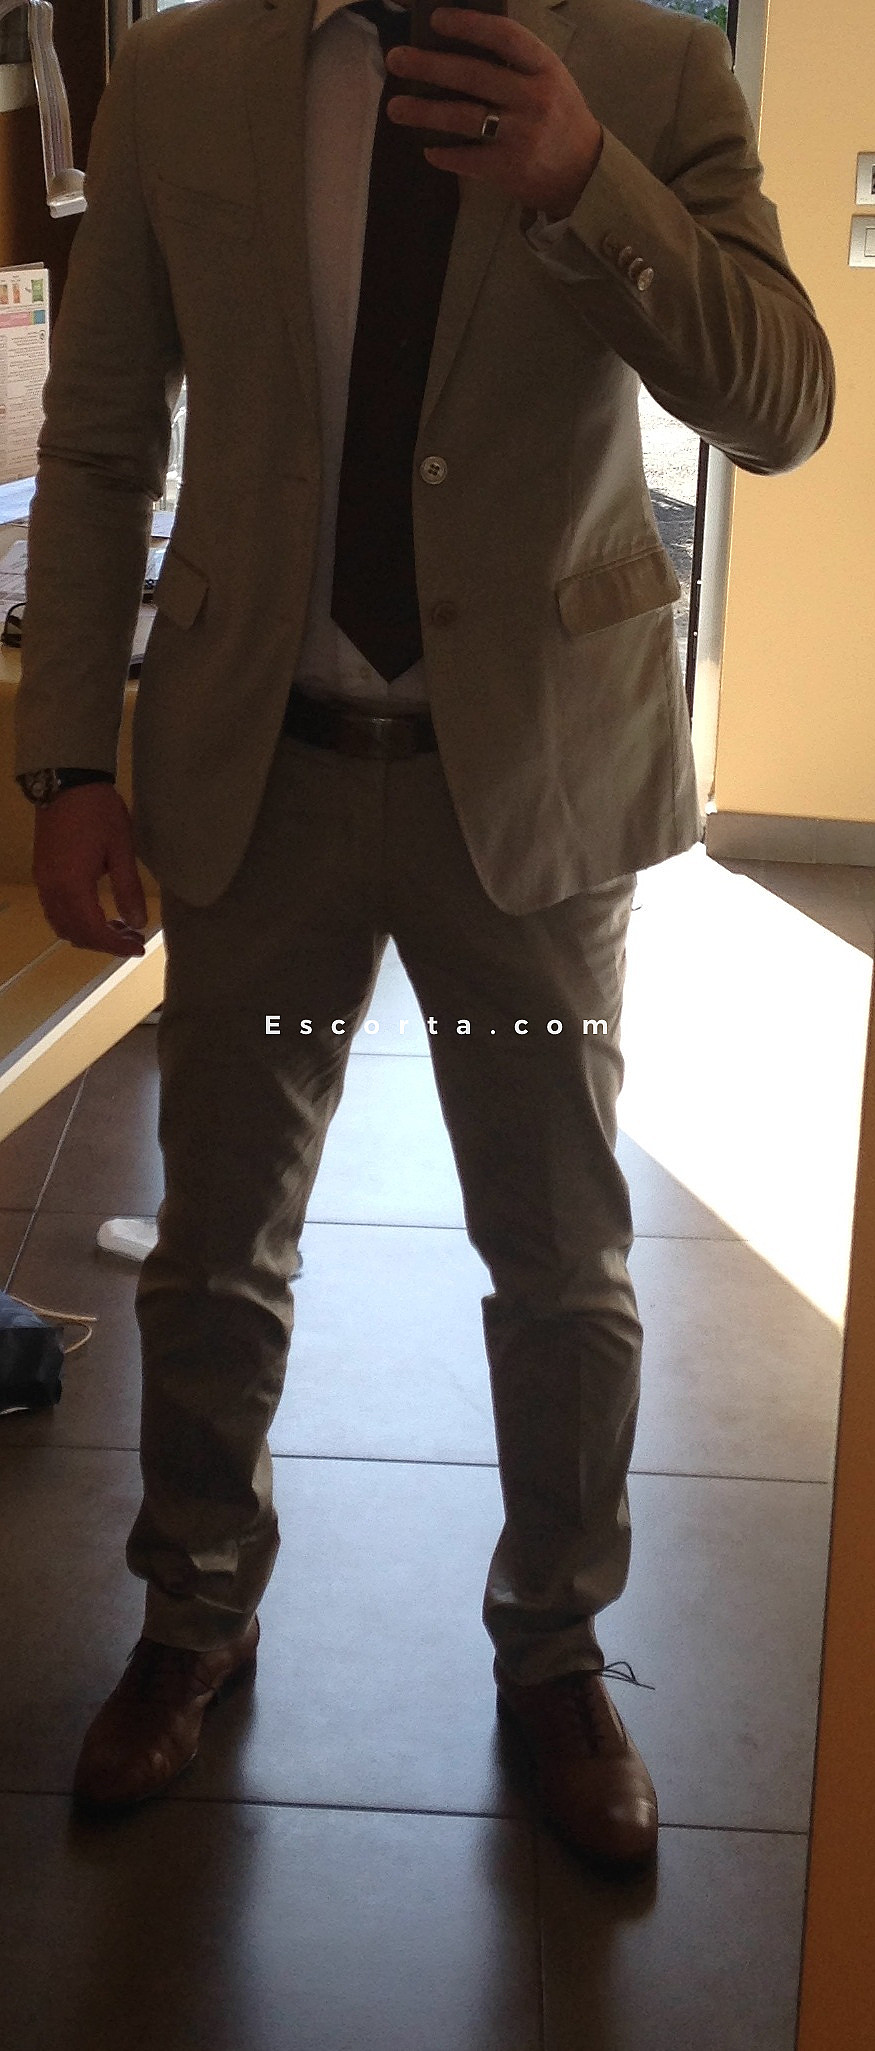 escort di catania planet escort gay